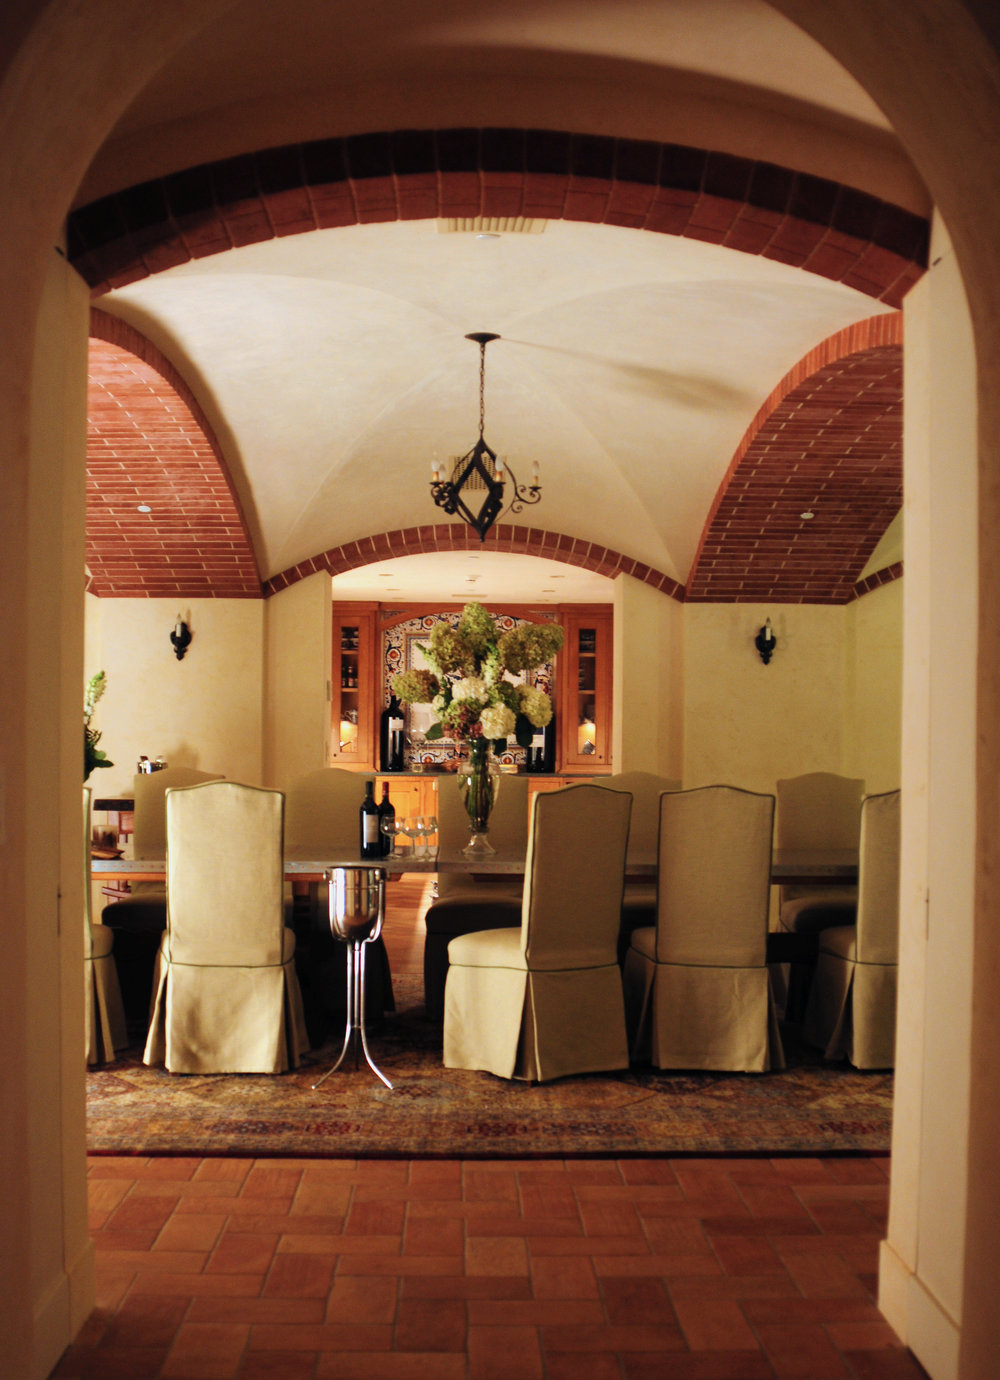 Kapito_Dining Room 2.jpg